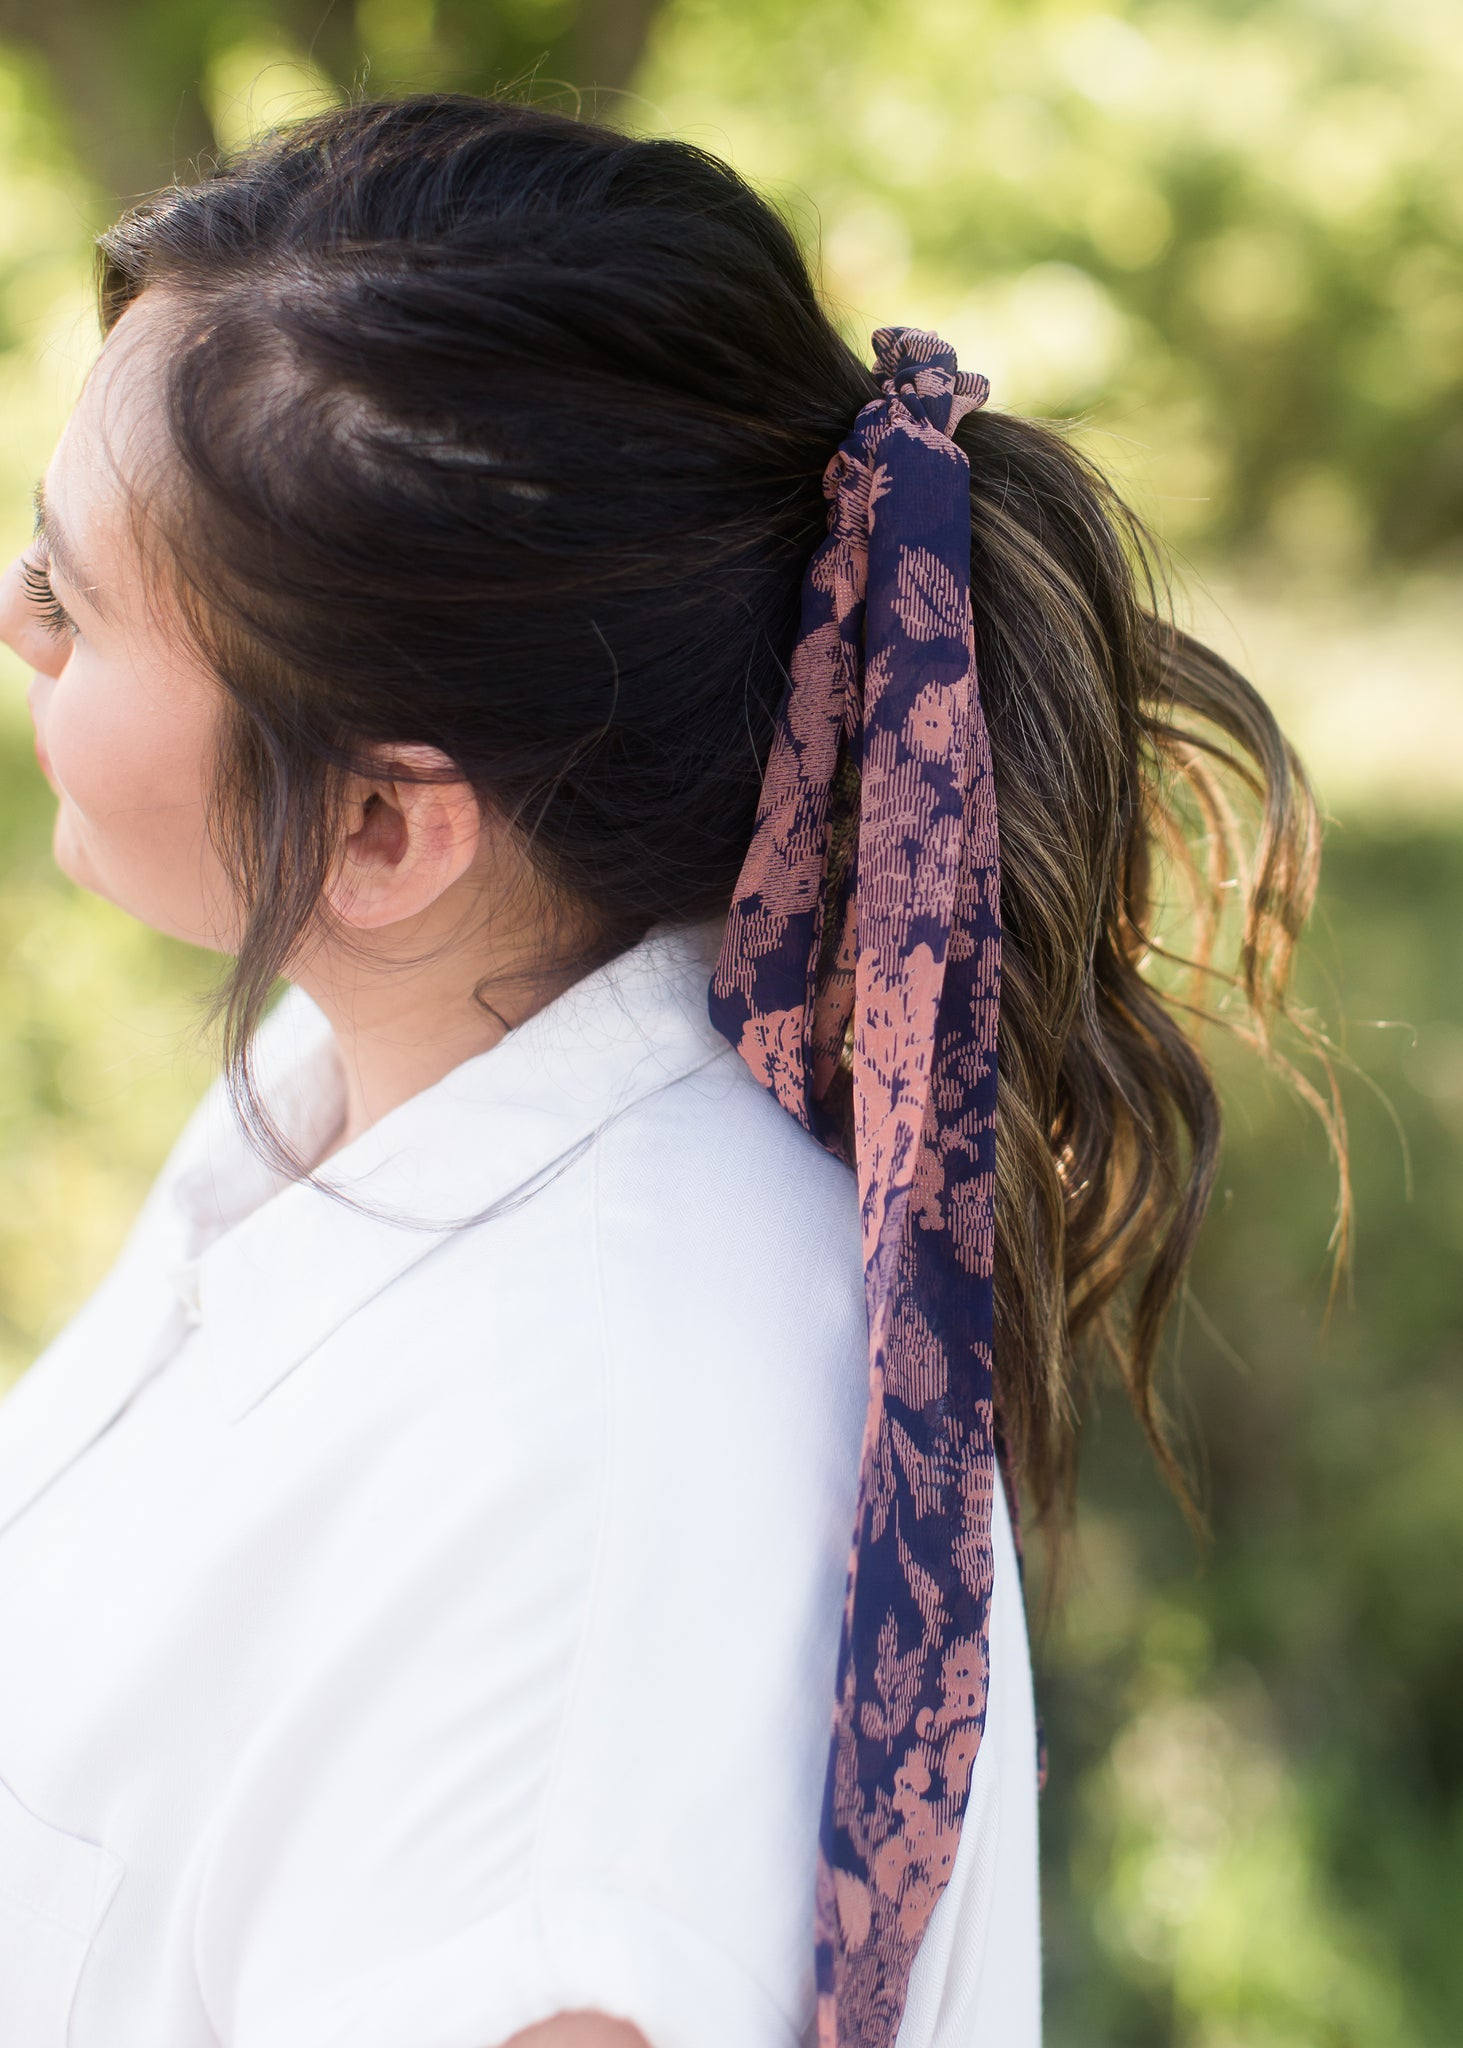 Navy floral hair scrunchie and bandana